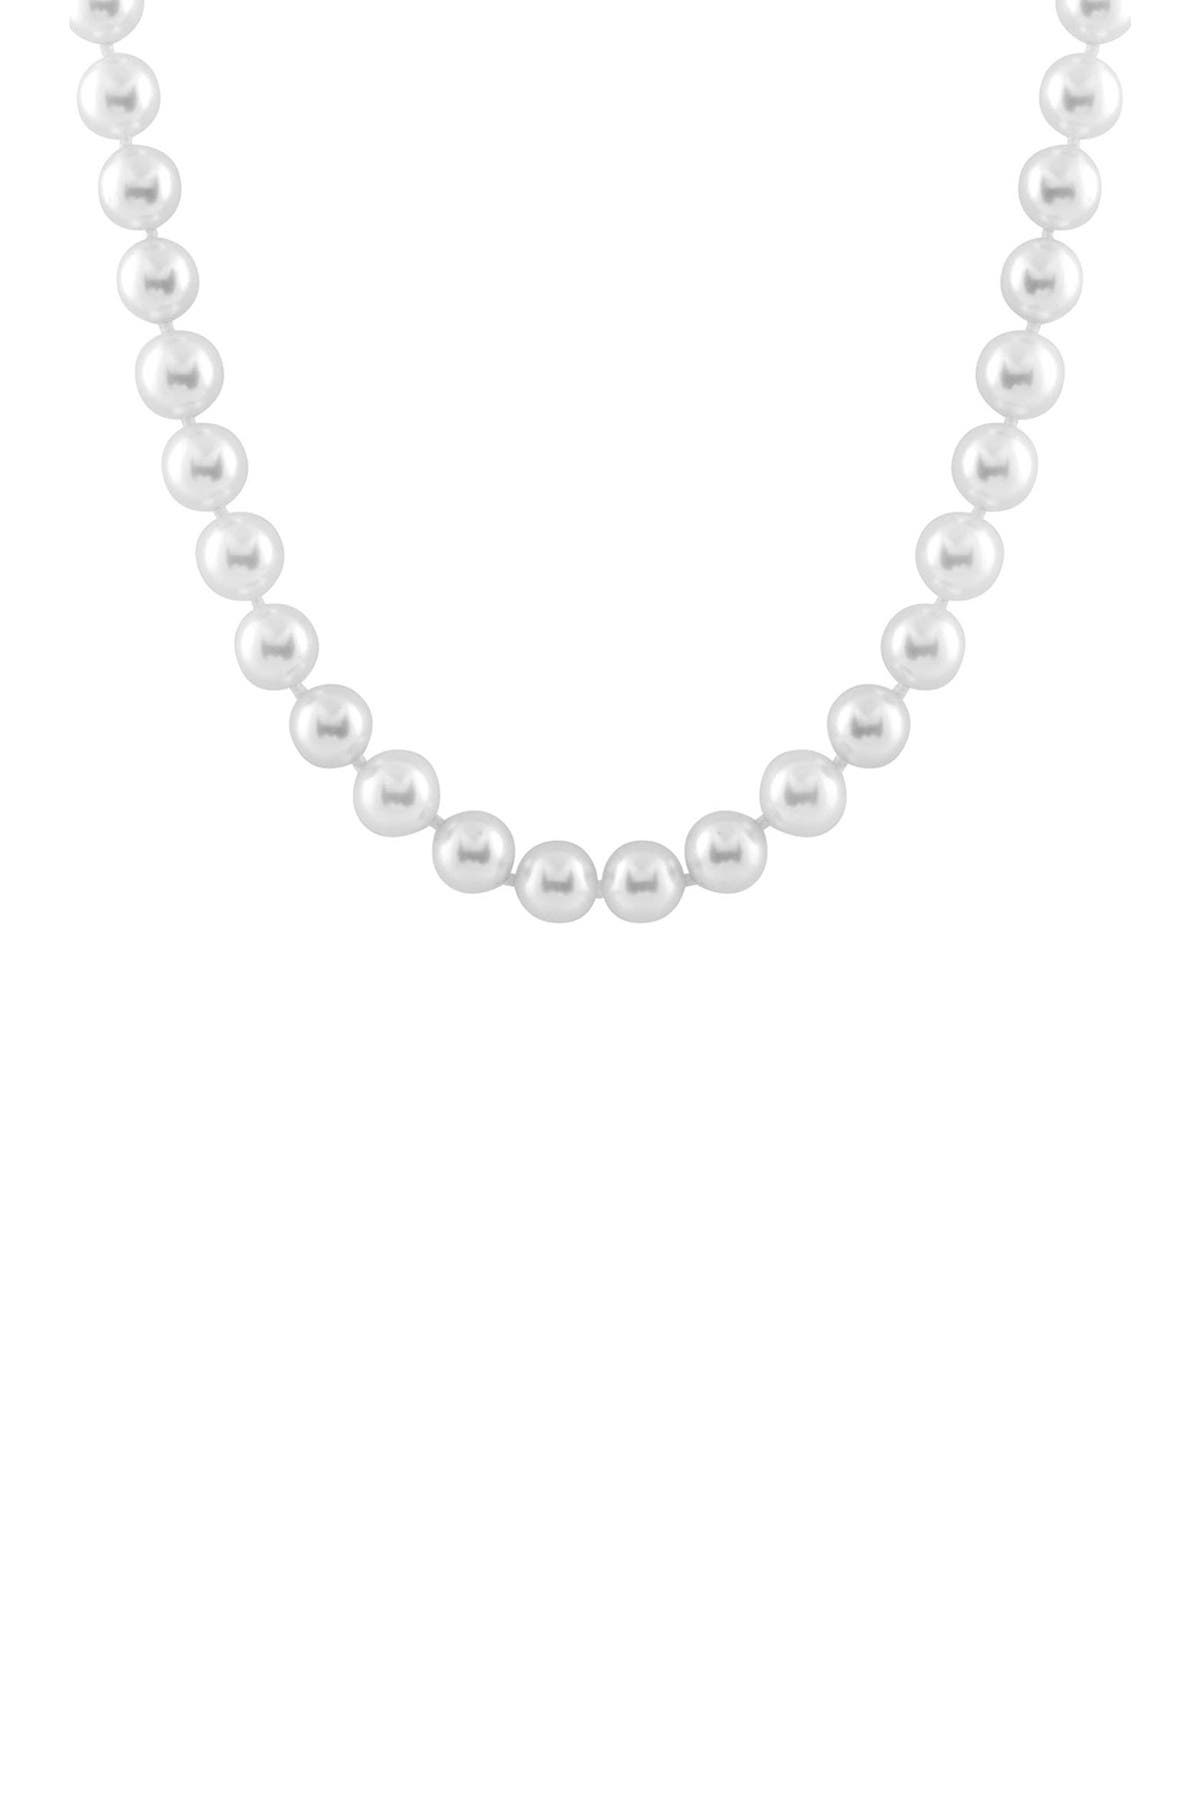 Image of Splendid Pearls 12mm White Shell Pearl Necklace